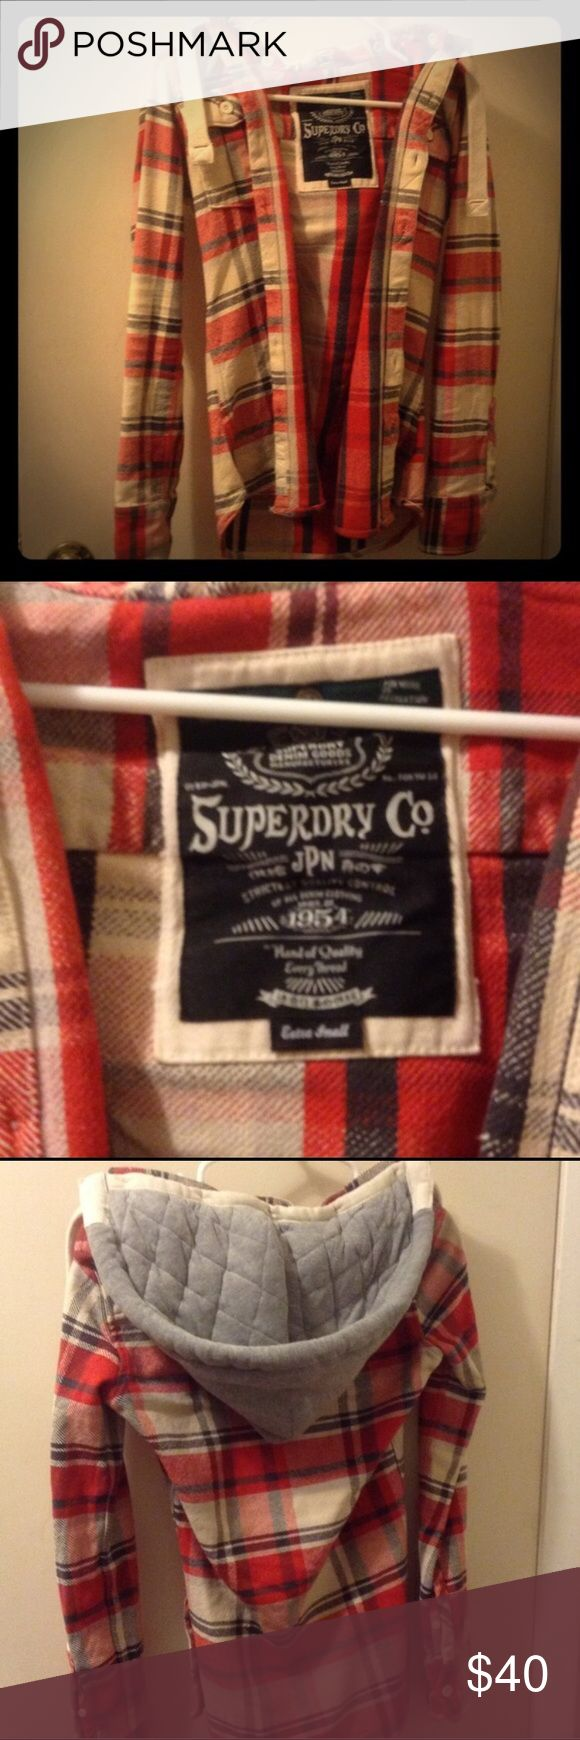 Superdry plaid button up with removable hood Superdry plaid button up with removable hood. Can be used alone or over a tank/ light layer jacket. Thick, quality material. Superdry size XS. Fits a size 2-4. Superdry Tops